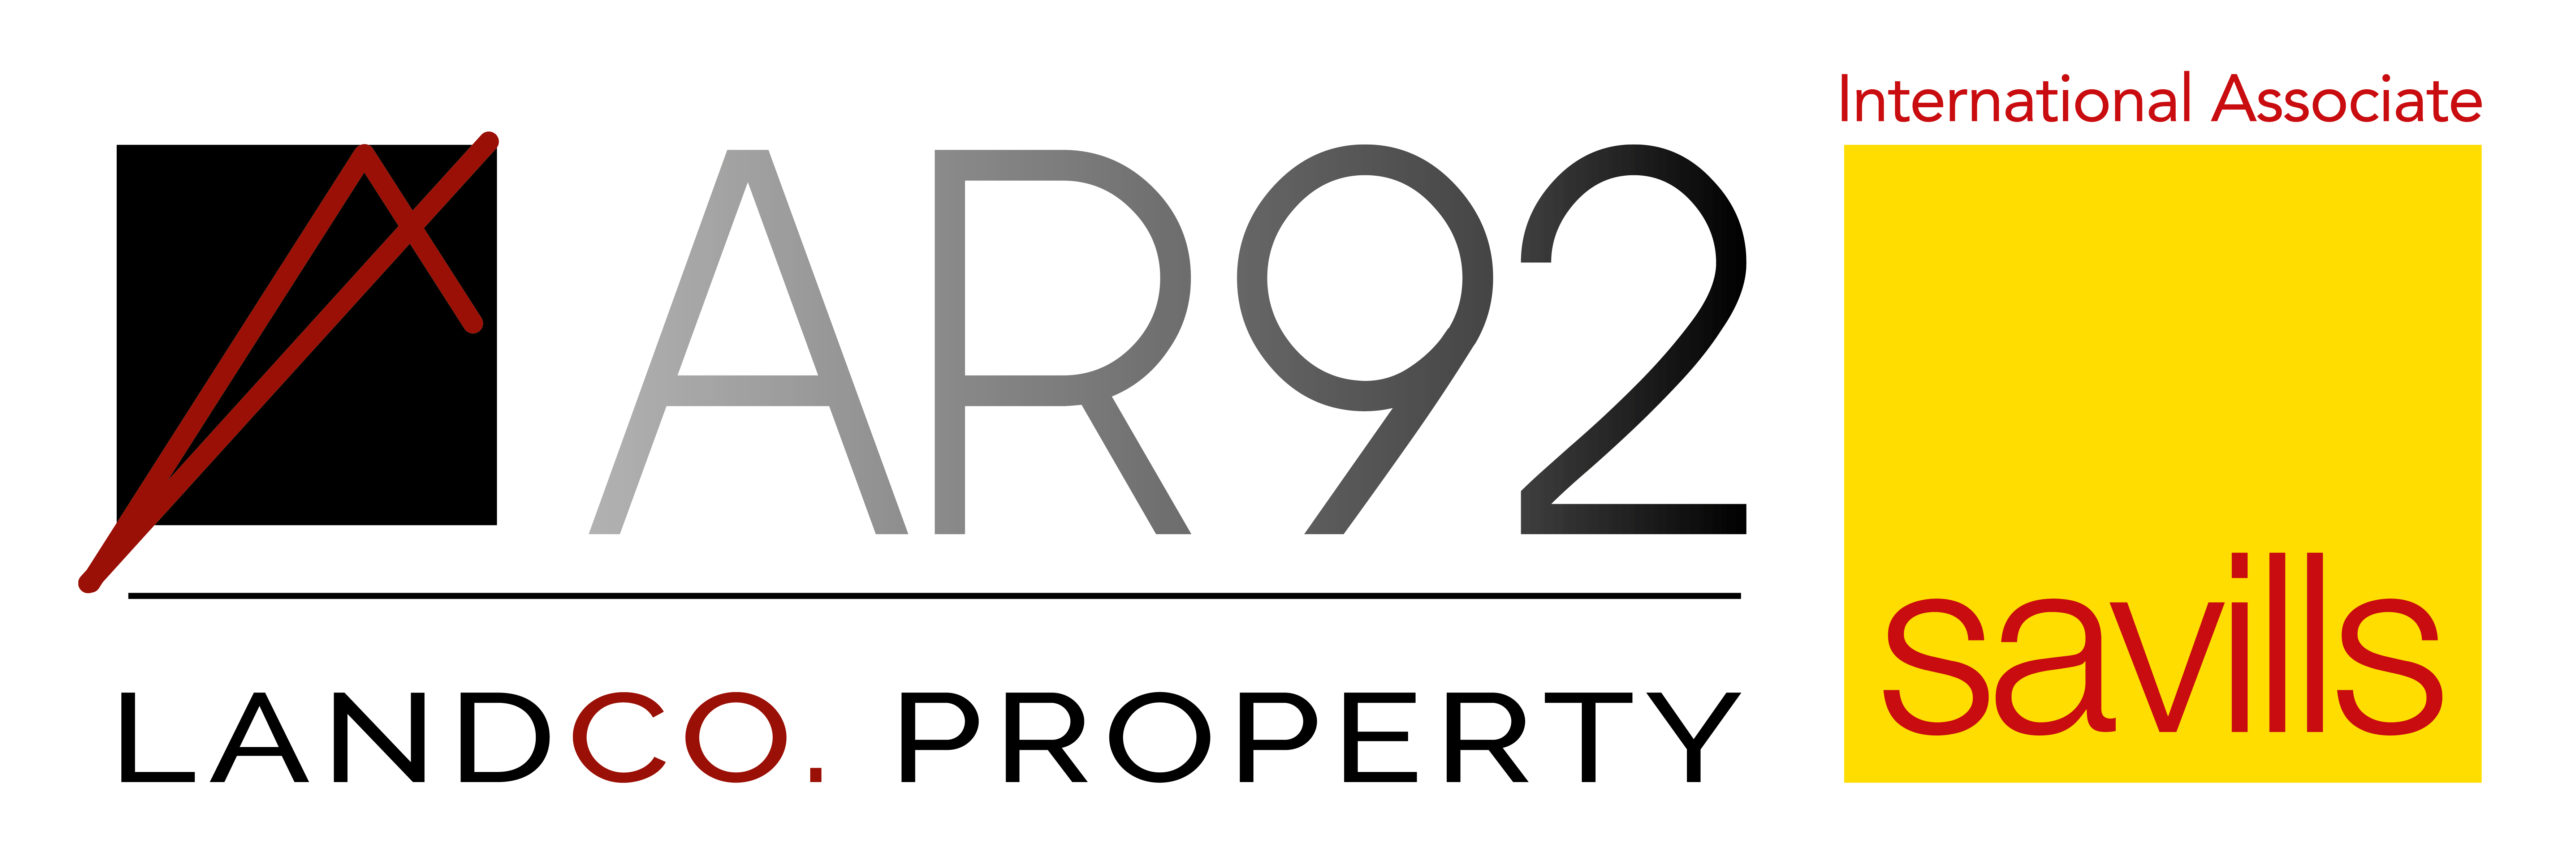 Ar92 LandCoProperty-Global Local